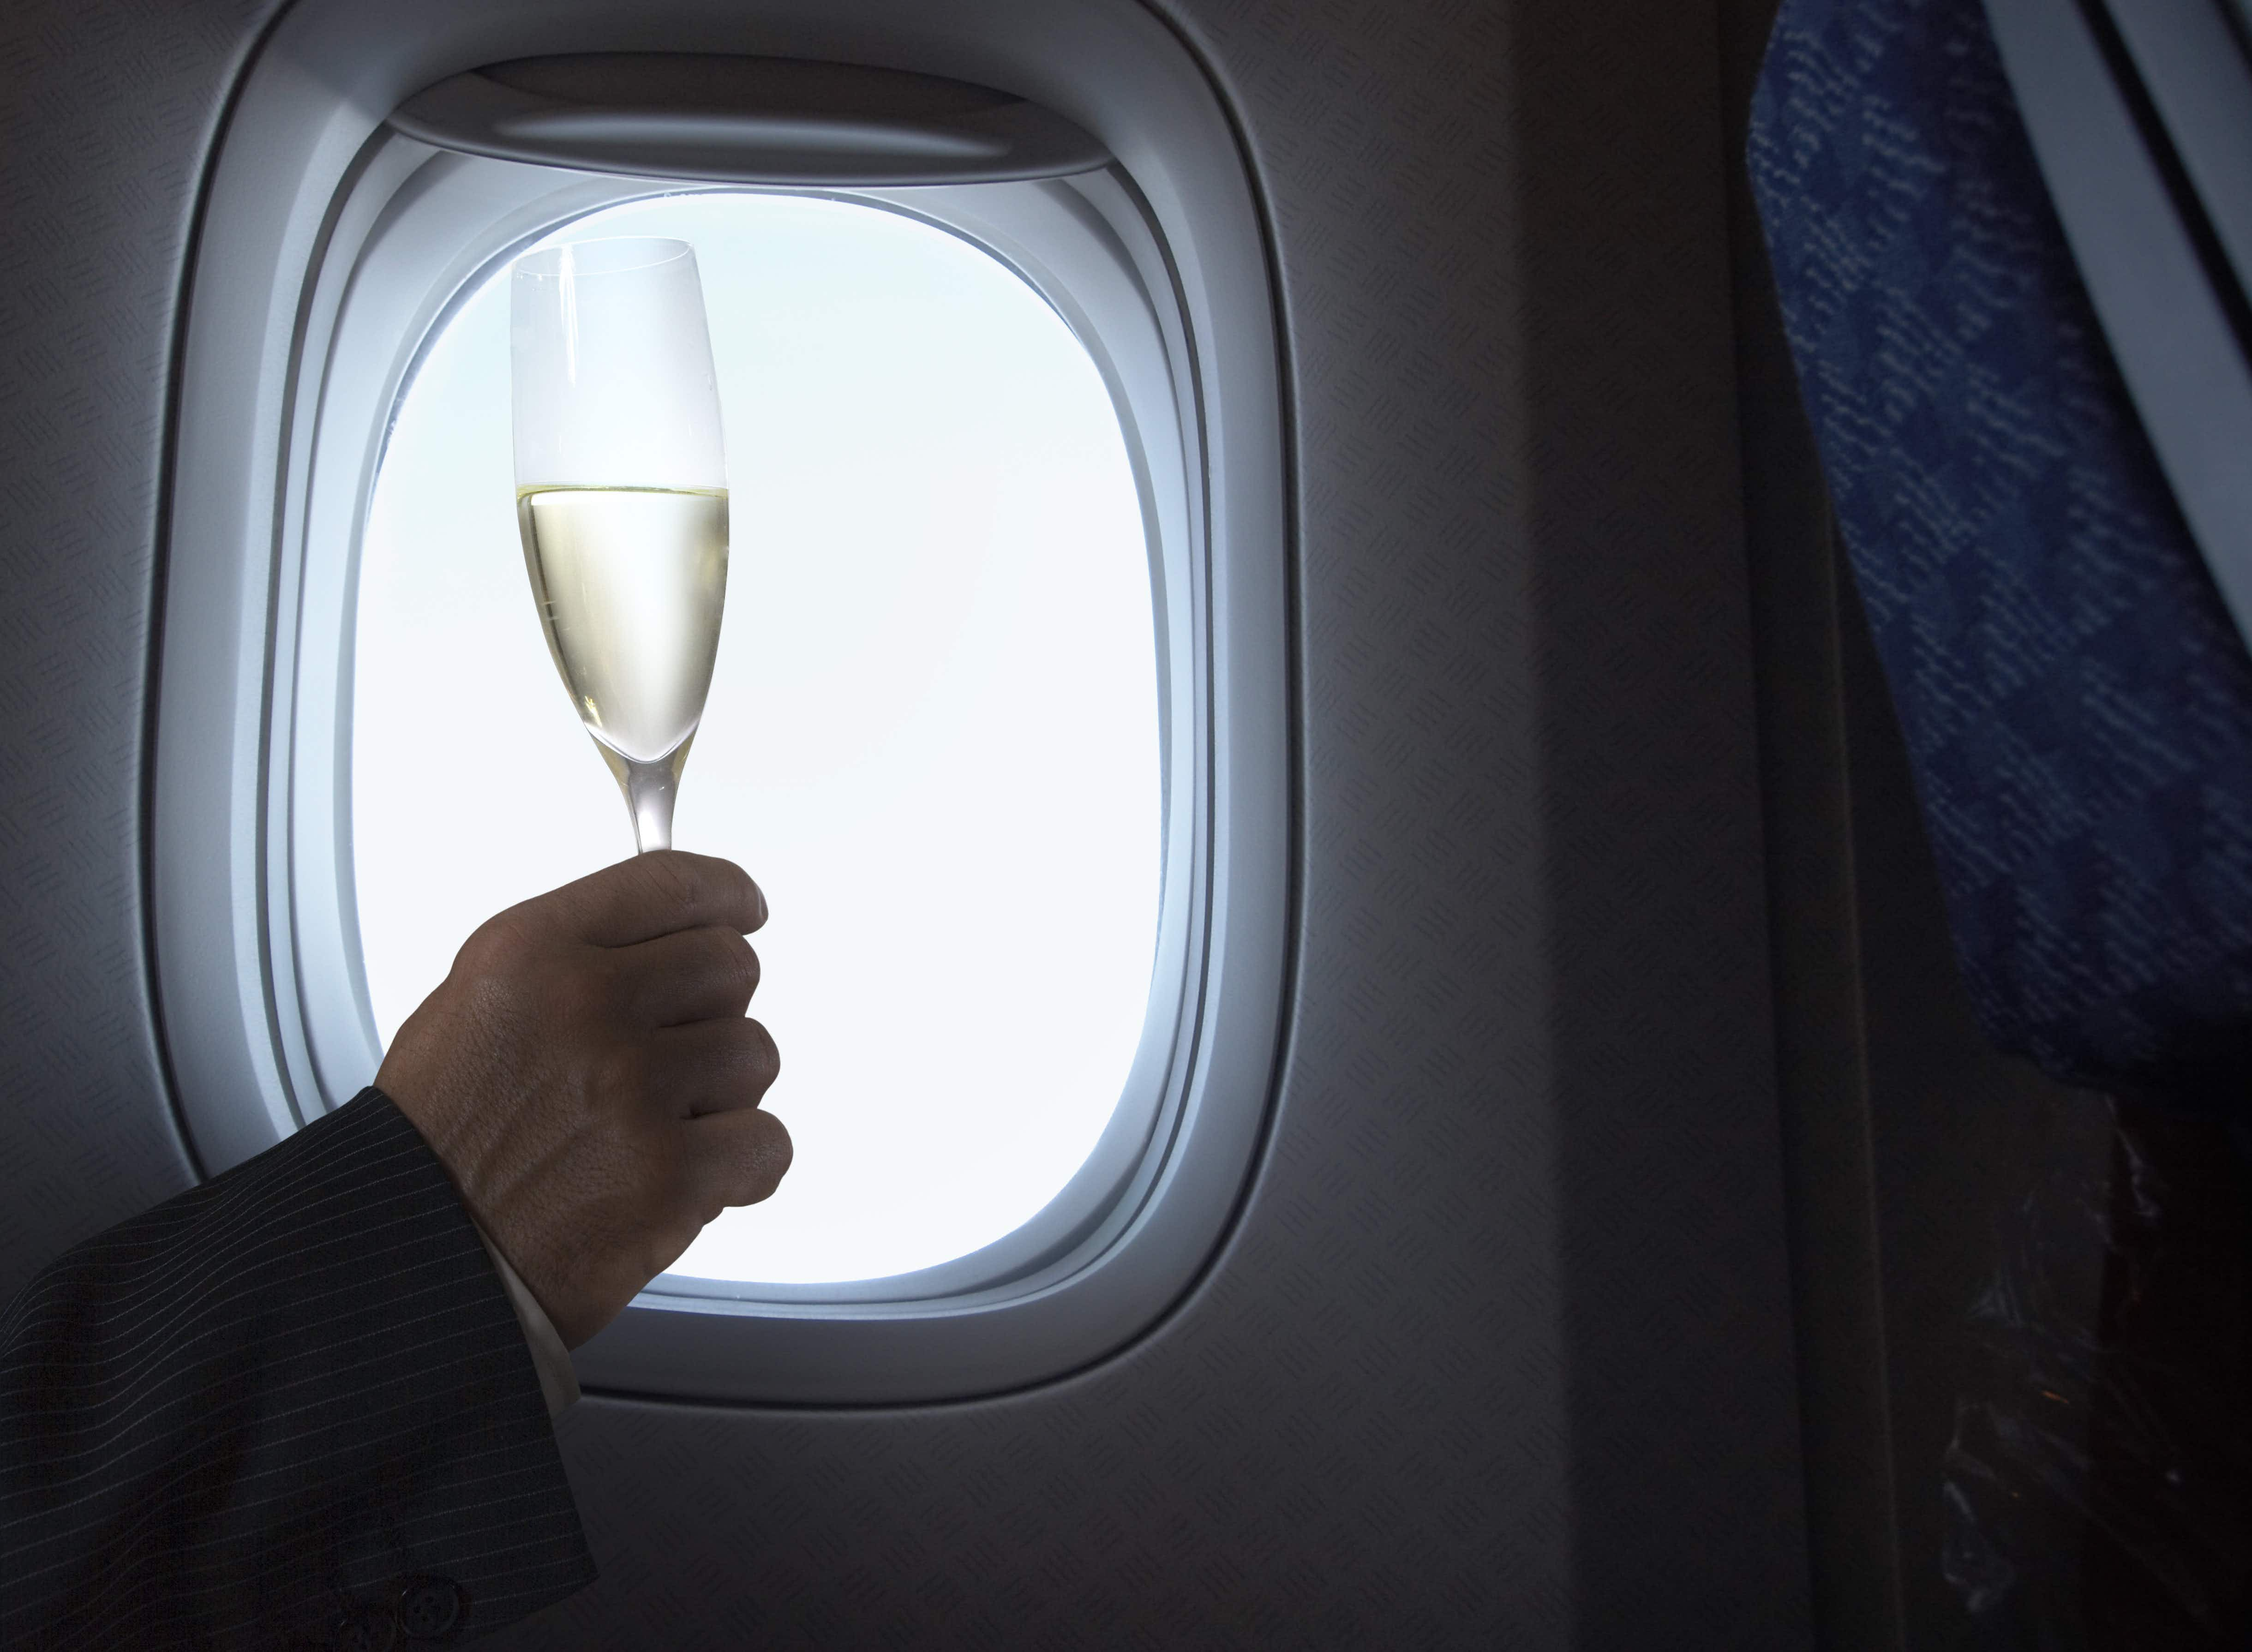 This US airline is now offering free prosecco on international flights